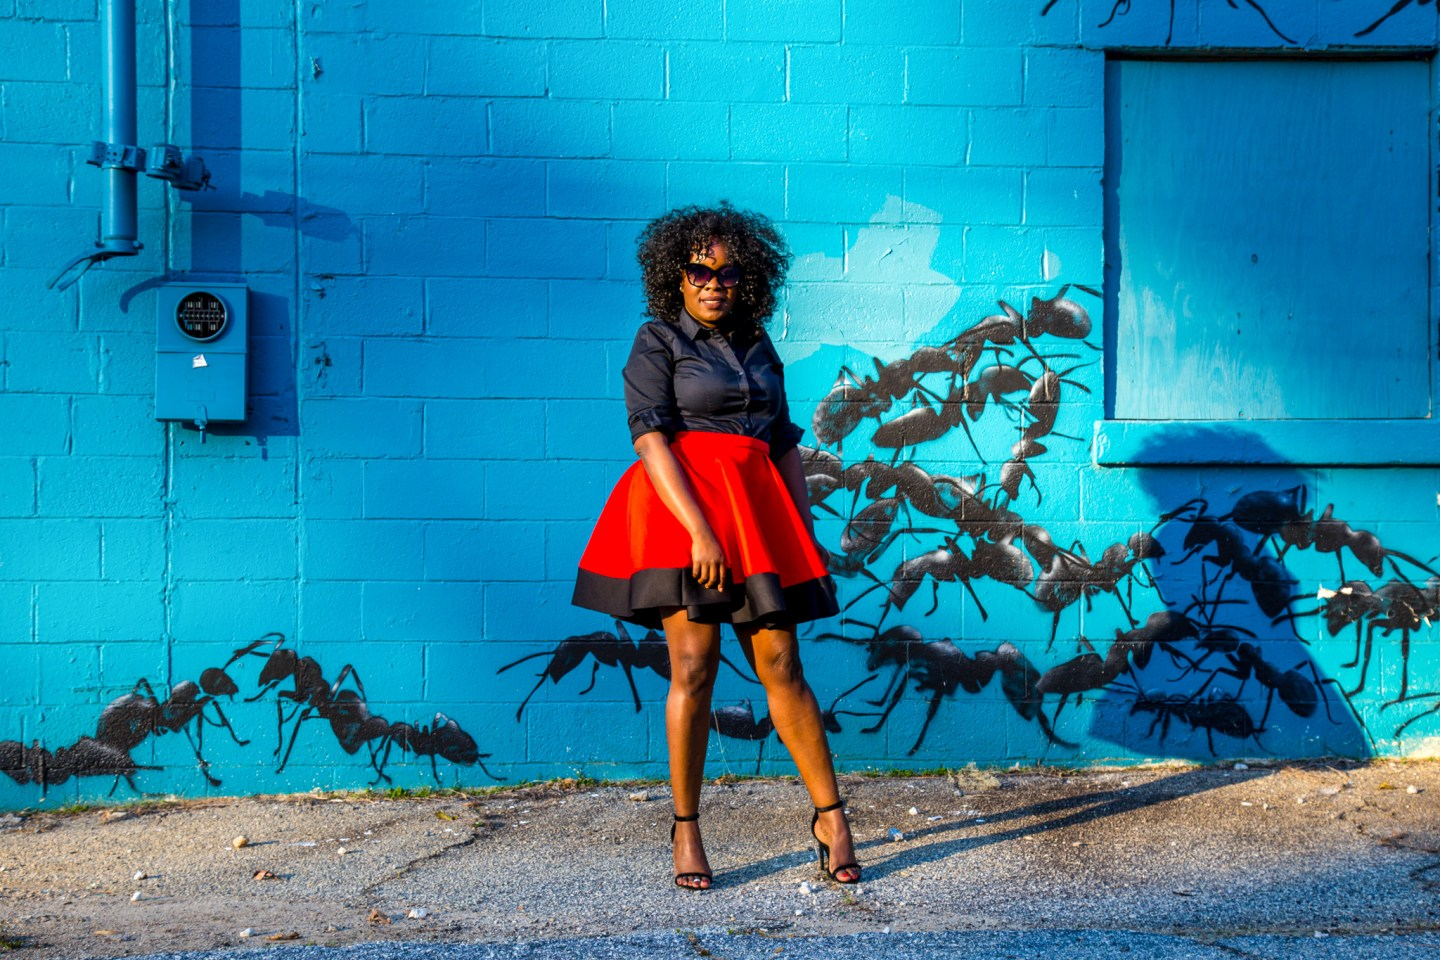 Black woman with curly hair wearing full circle skirt standing in front of a ant mural